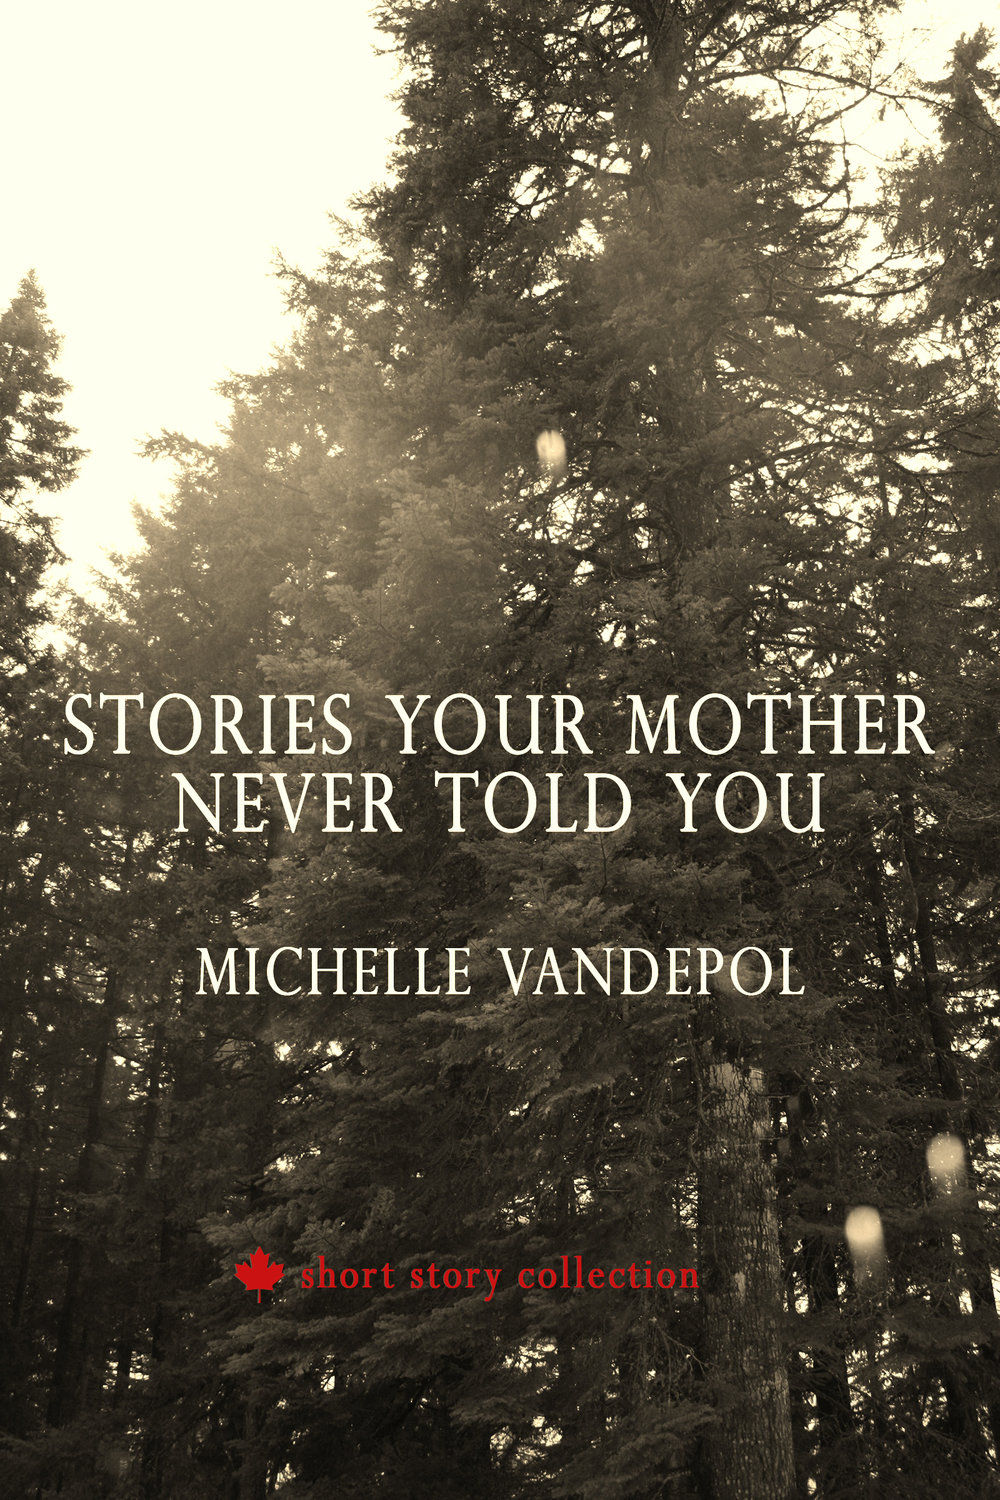 Stories Your Mother Never Told You.jpg